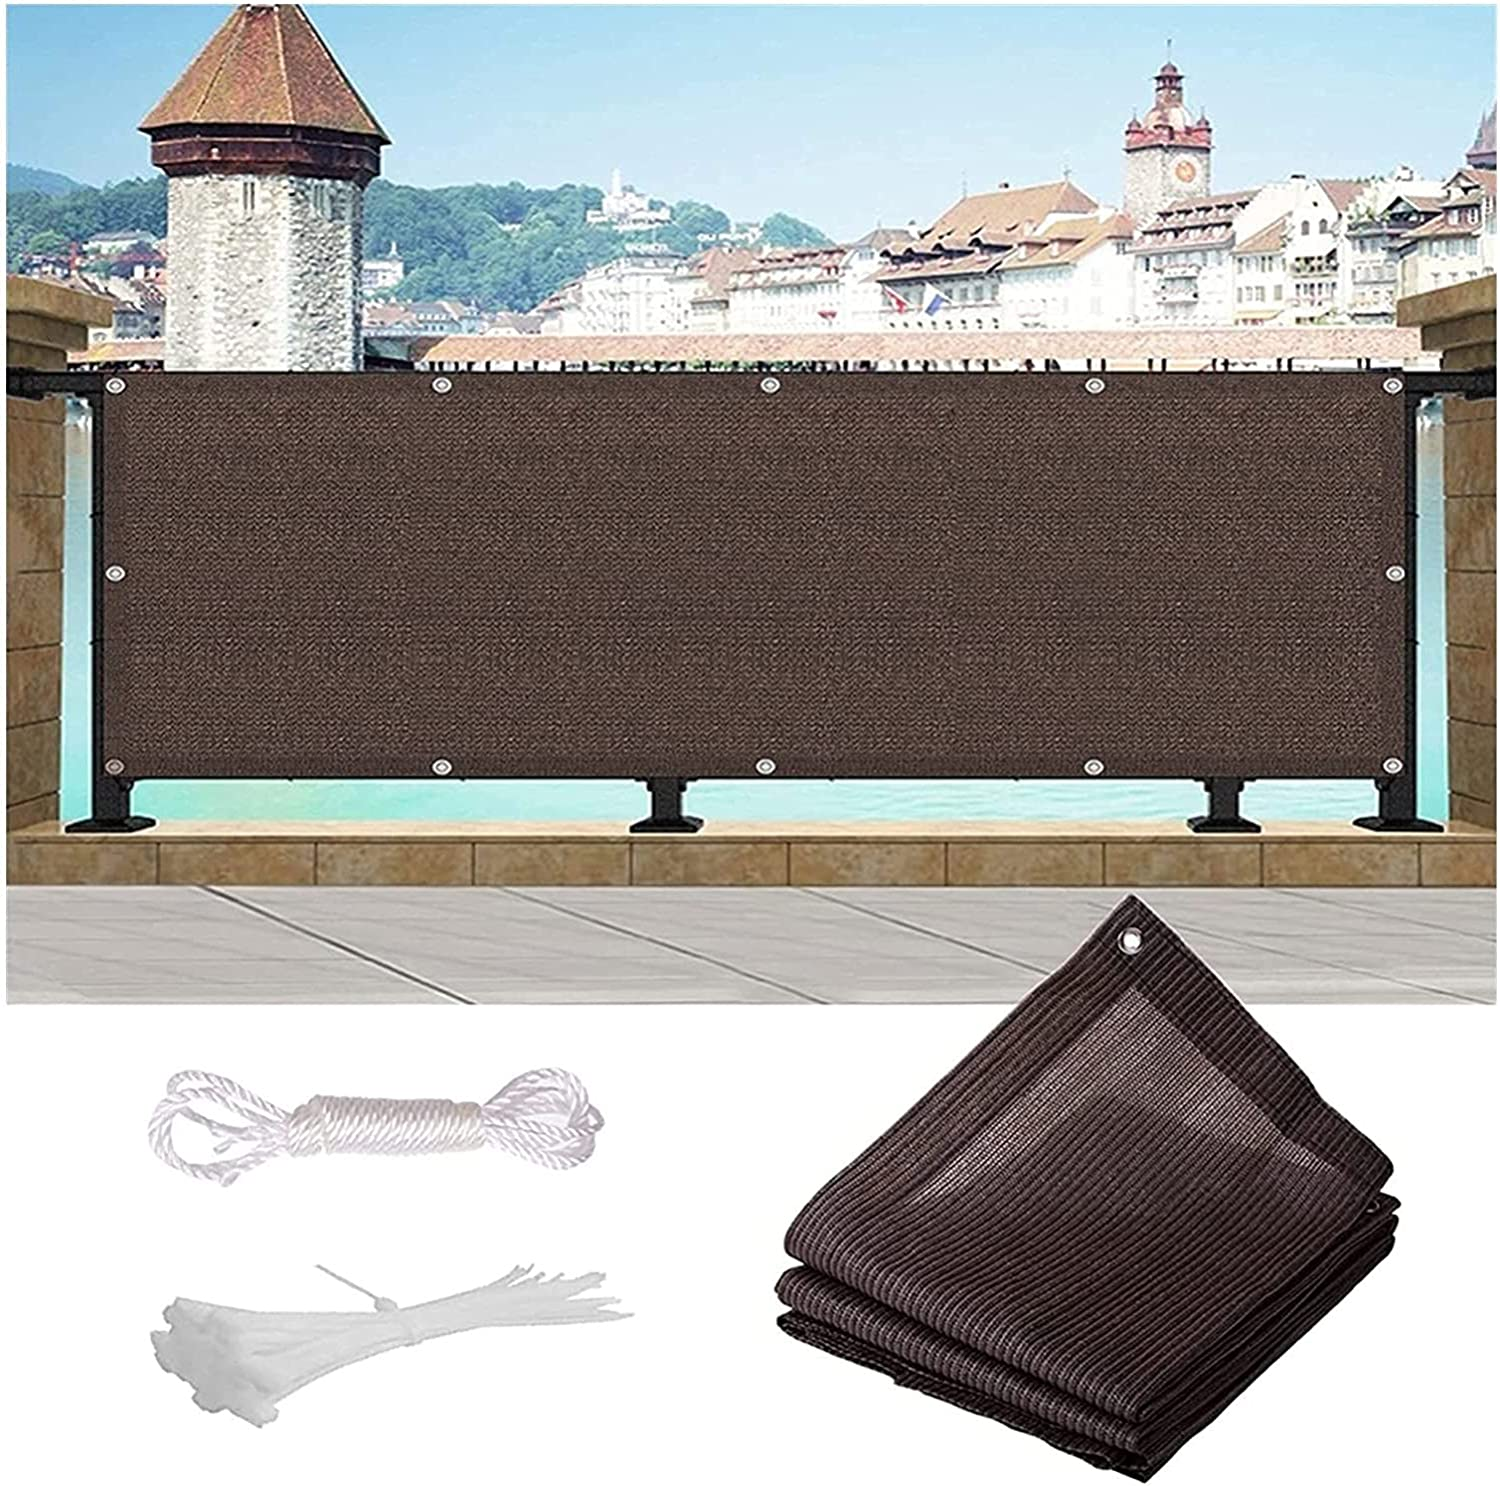 SDWJJ Balcony Max 63% OFF We OFFer at cheap prices Privacy Screen Wind Protection Stadium Ultraviolet